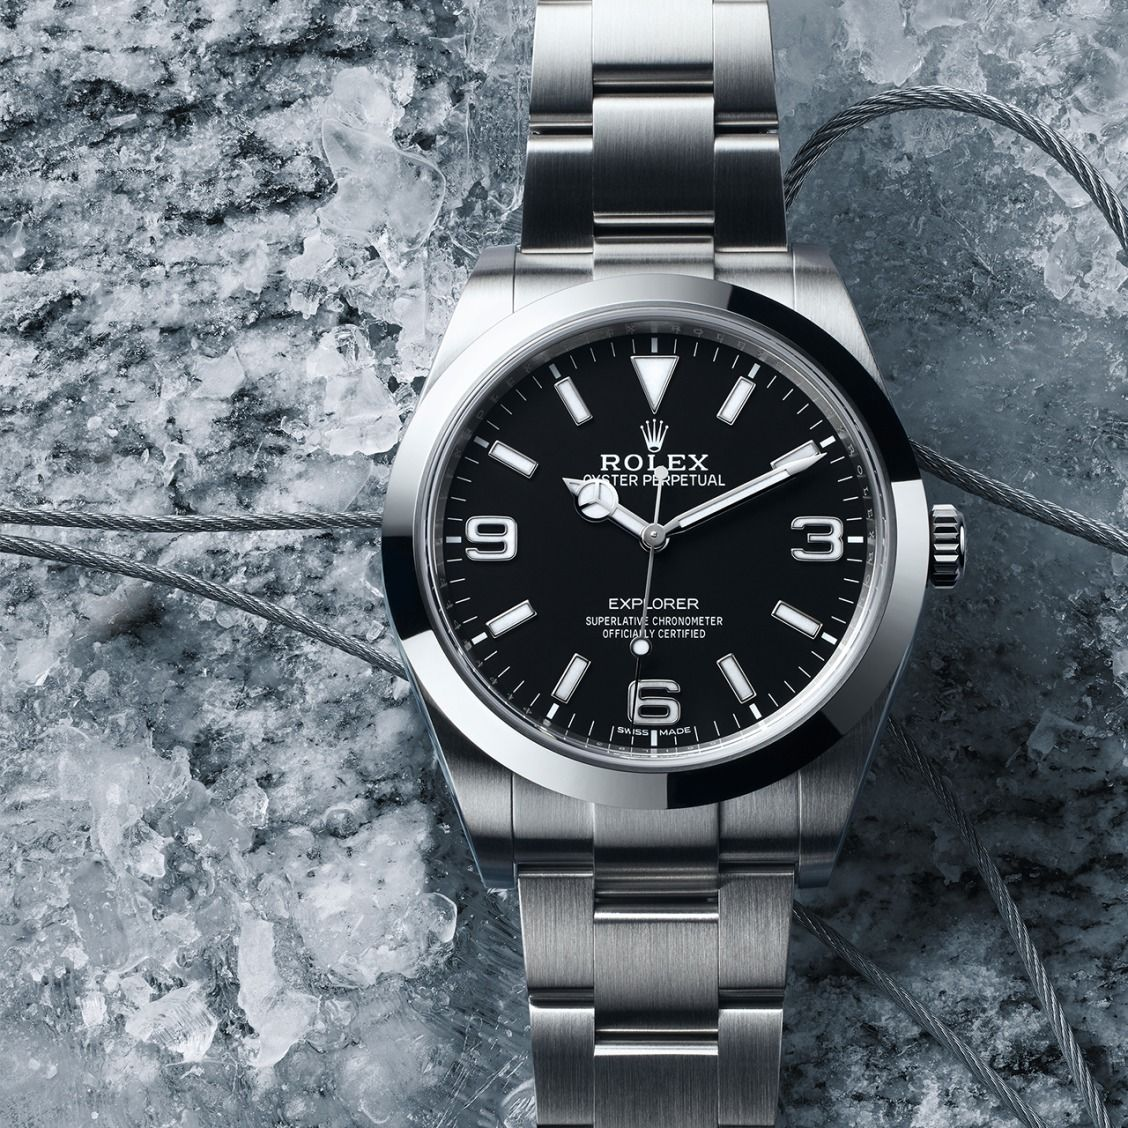 The Rolex Explorer draws on decades of experience on icy mountainsides. Mountaineers and adventurers had a direct impact on the development of Rolex Oyster watches in the quest for ever greater precision, robustness and reliability.